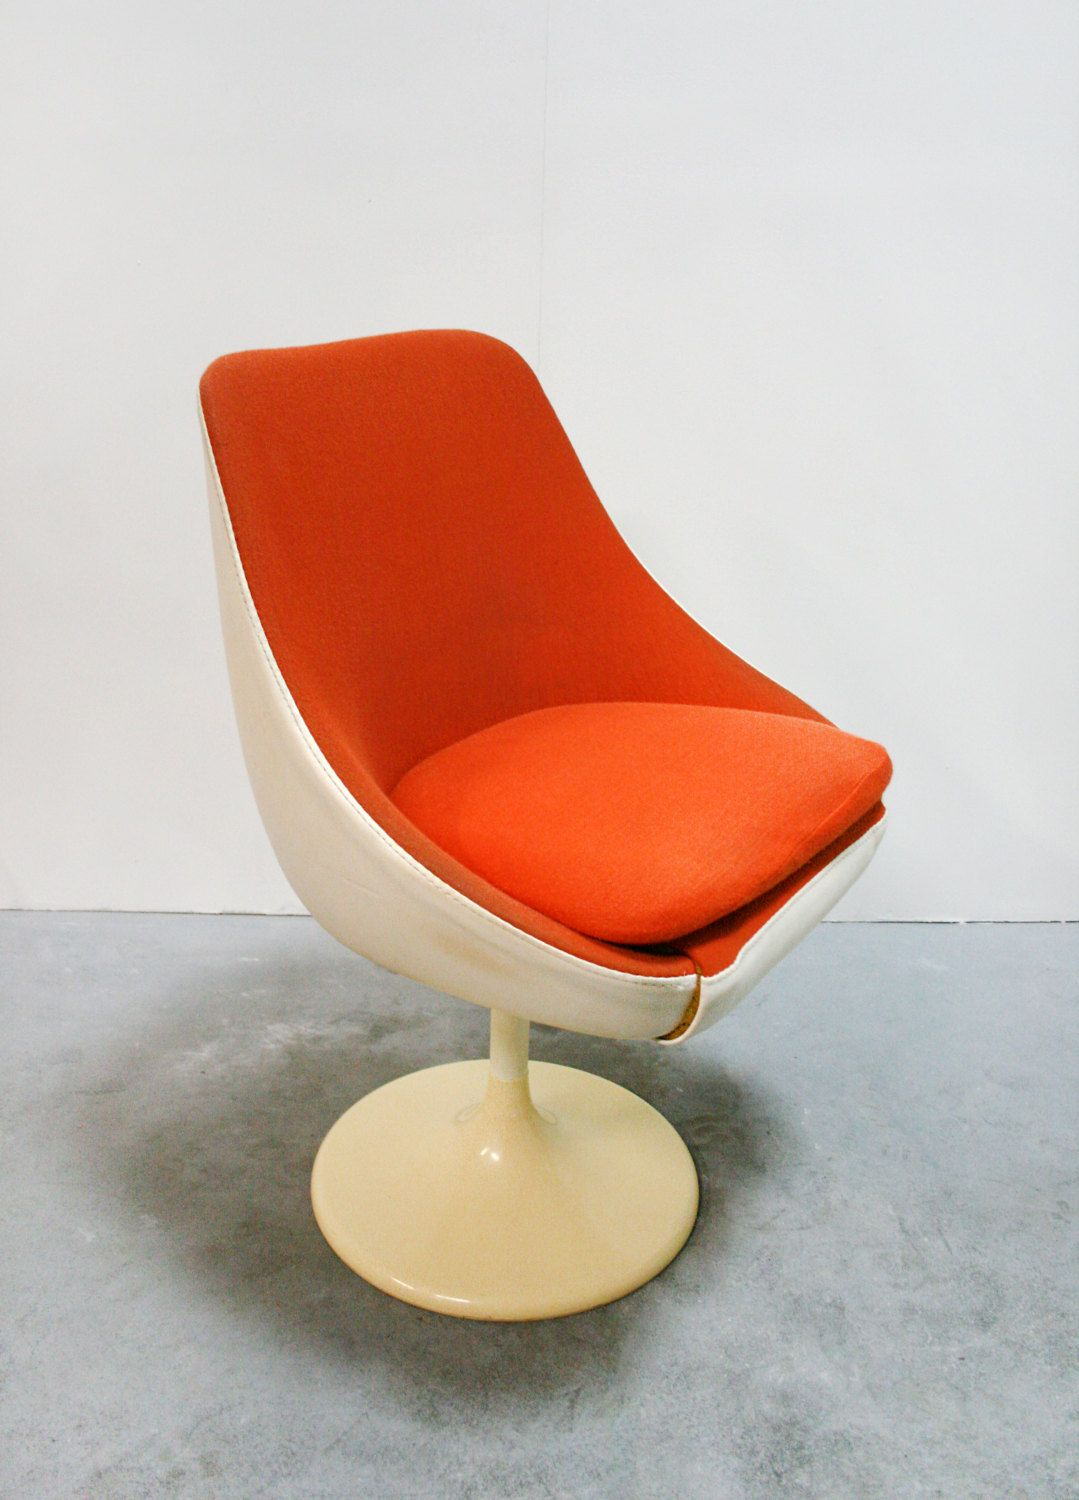 Vintage Lusch Erzeugnis Egg Pod Tulip Leather Swivel Lounge Chair Designed  By Joe Colombo   White